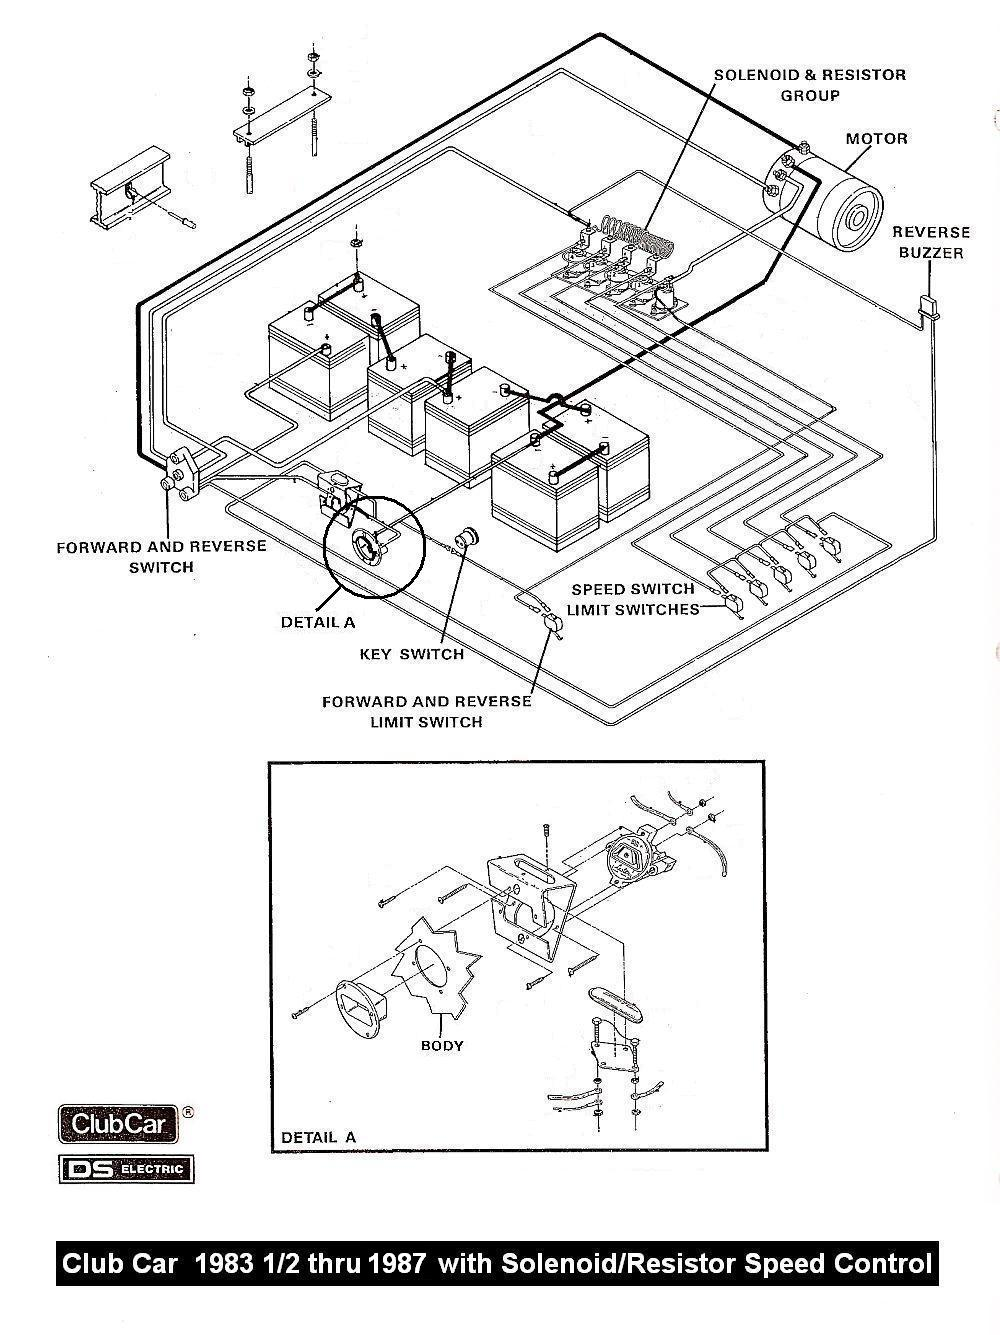 48 volt club car schematic 87 electric club car 36v solenoid/charger issues 48 volt solenoid wiring schematic #6